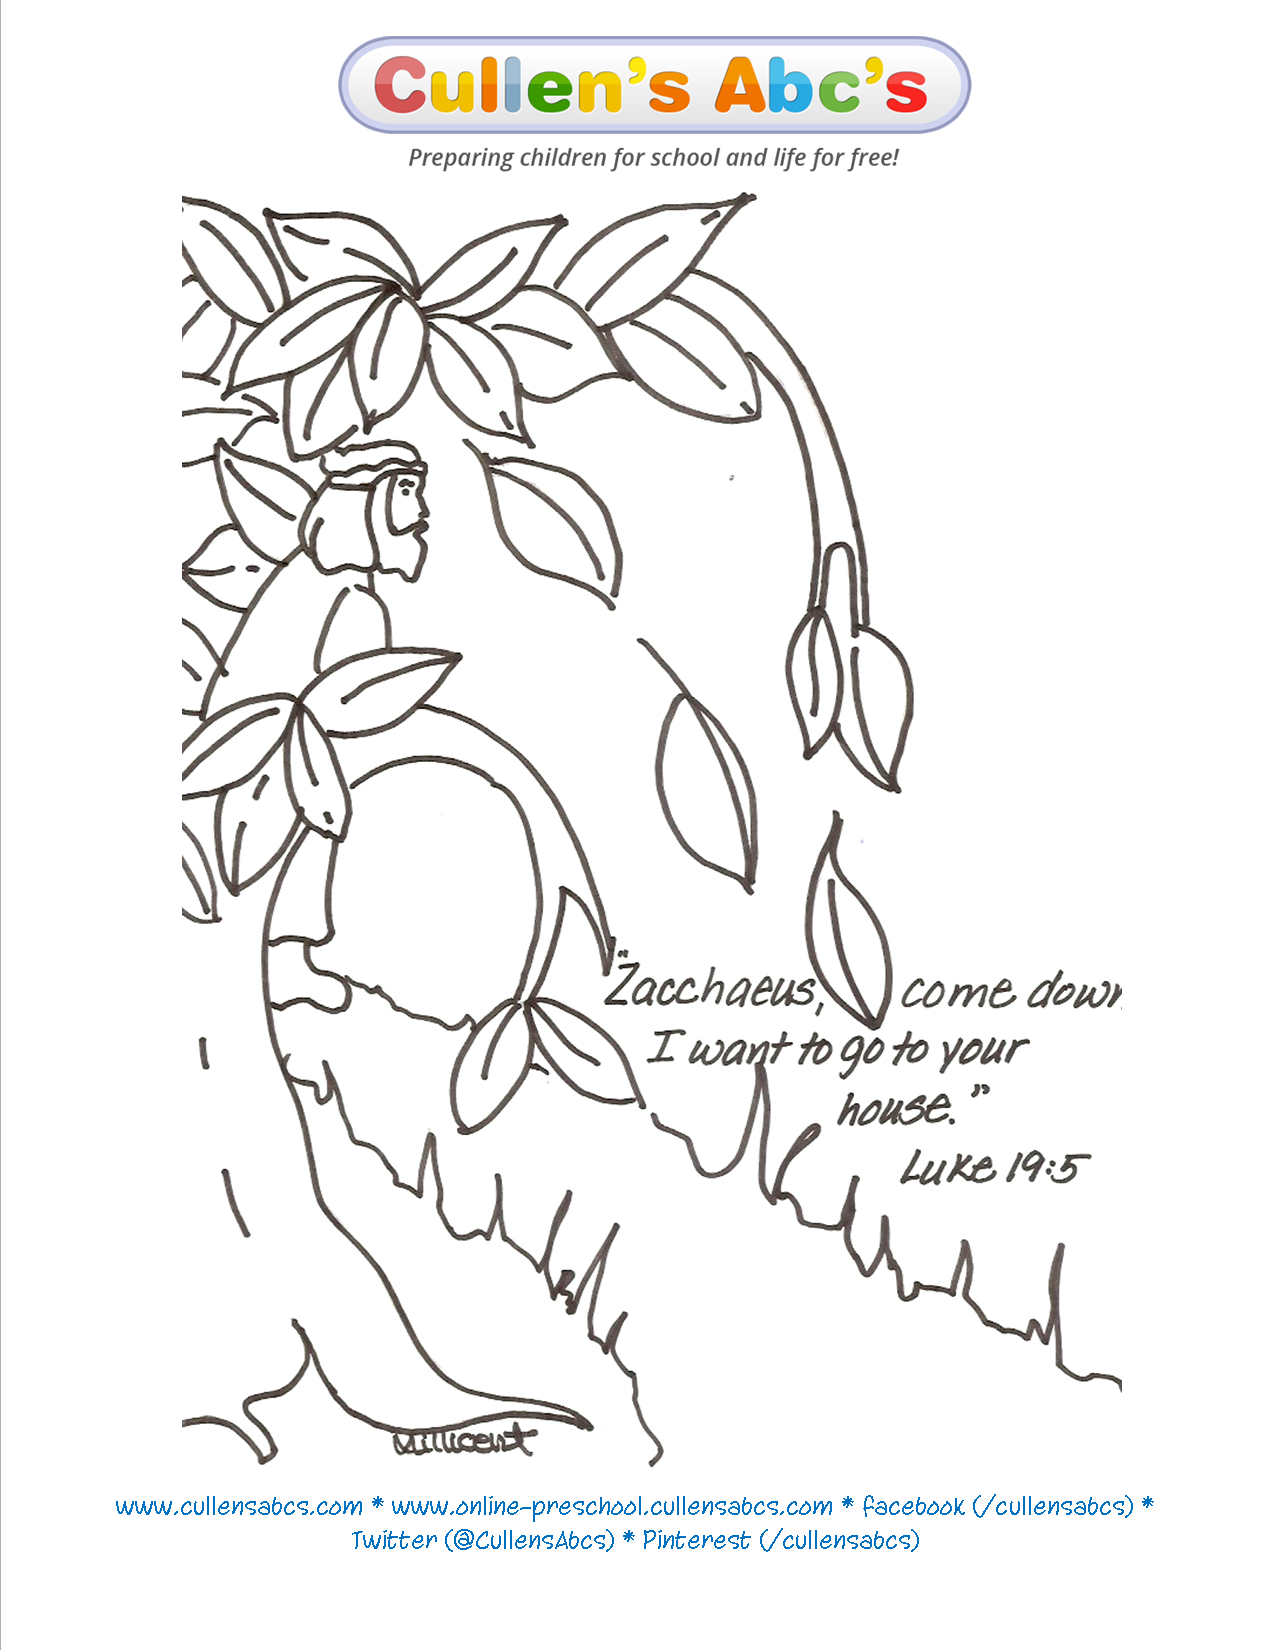 Coloring pages bible stories preschoolers - Zacchaeus Bible Memory Verse Coloring Page